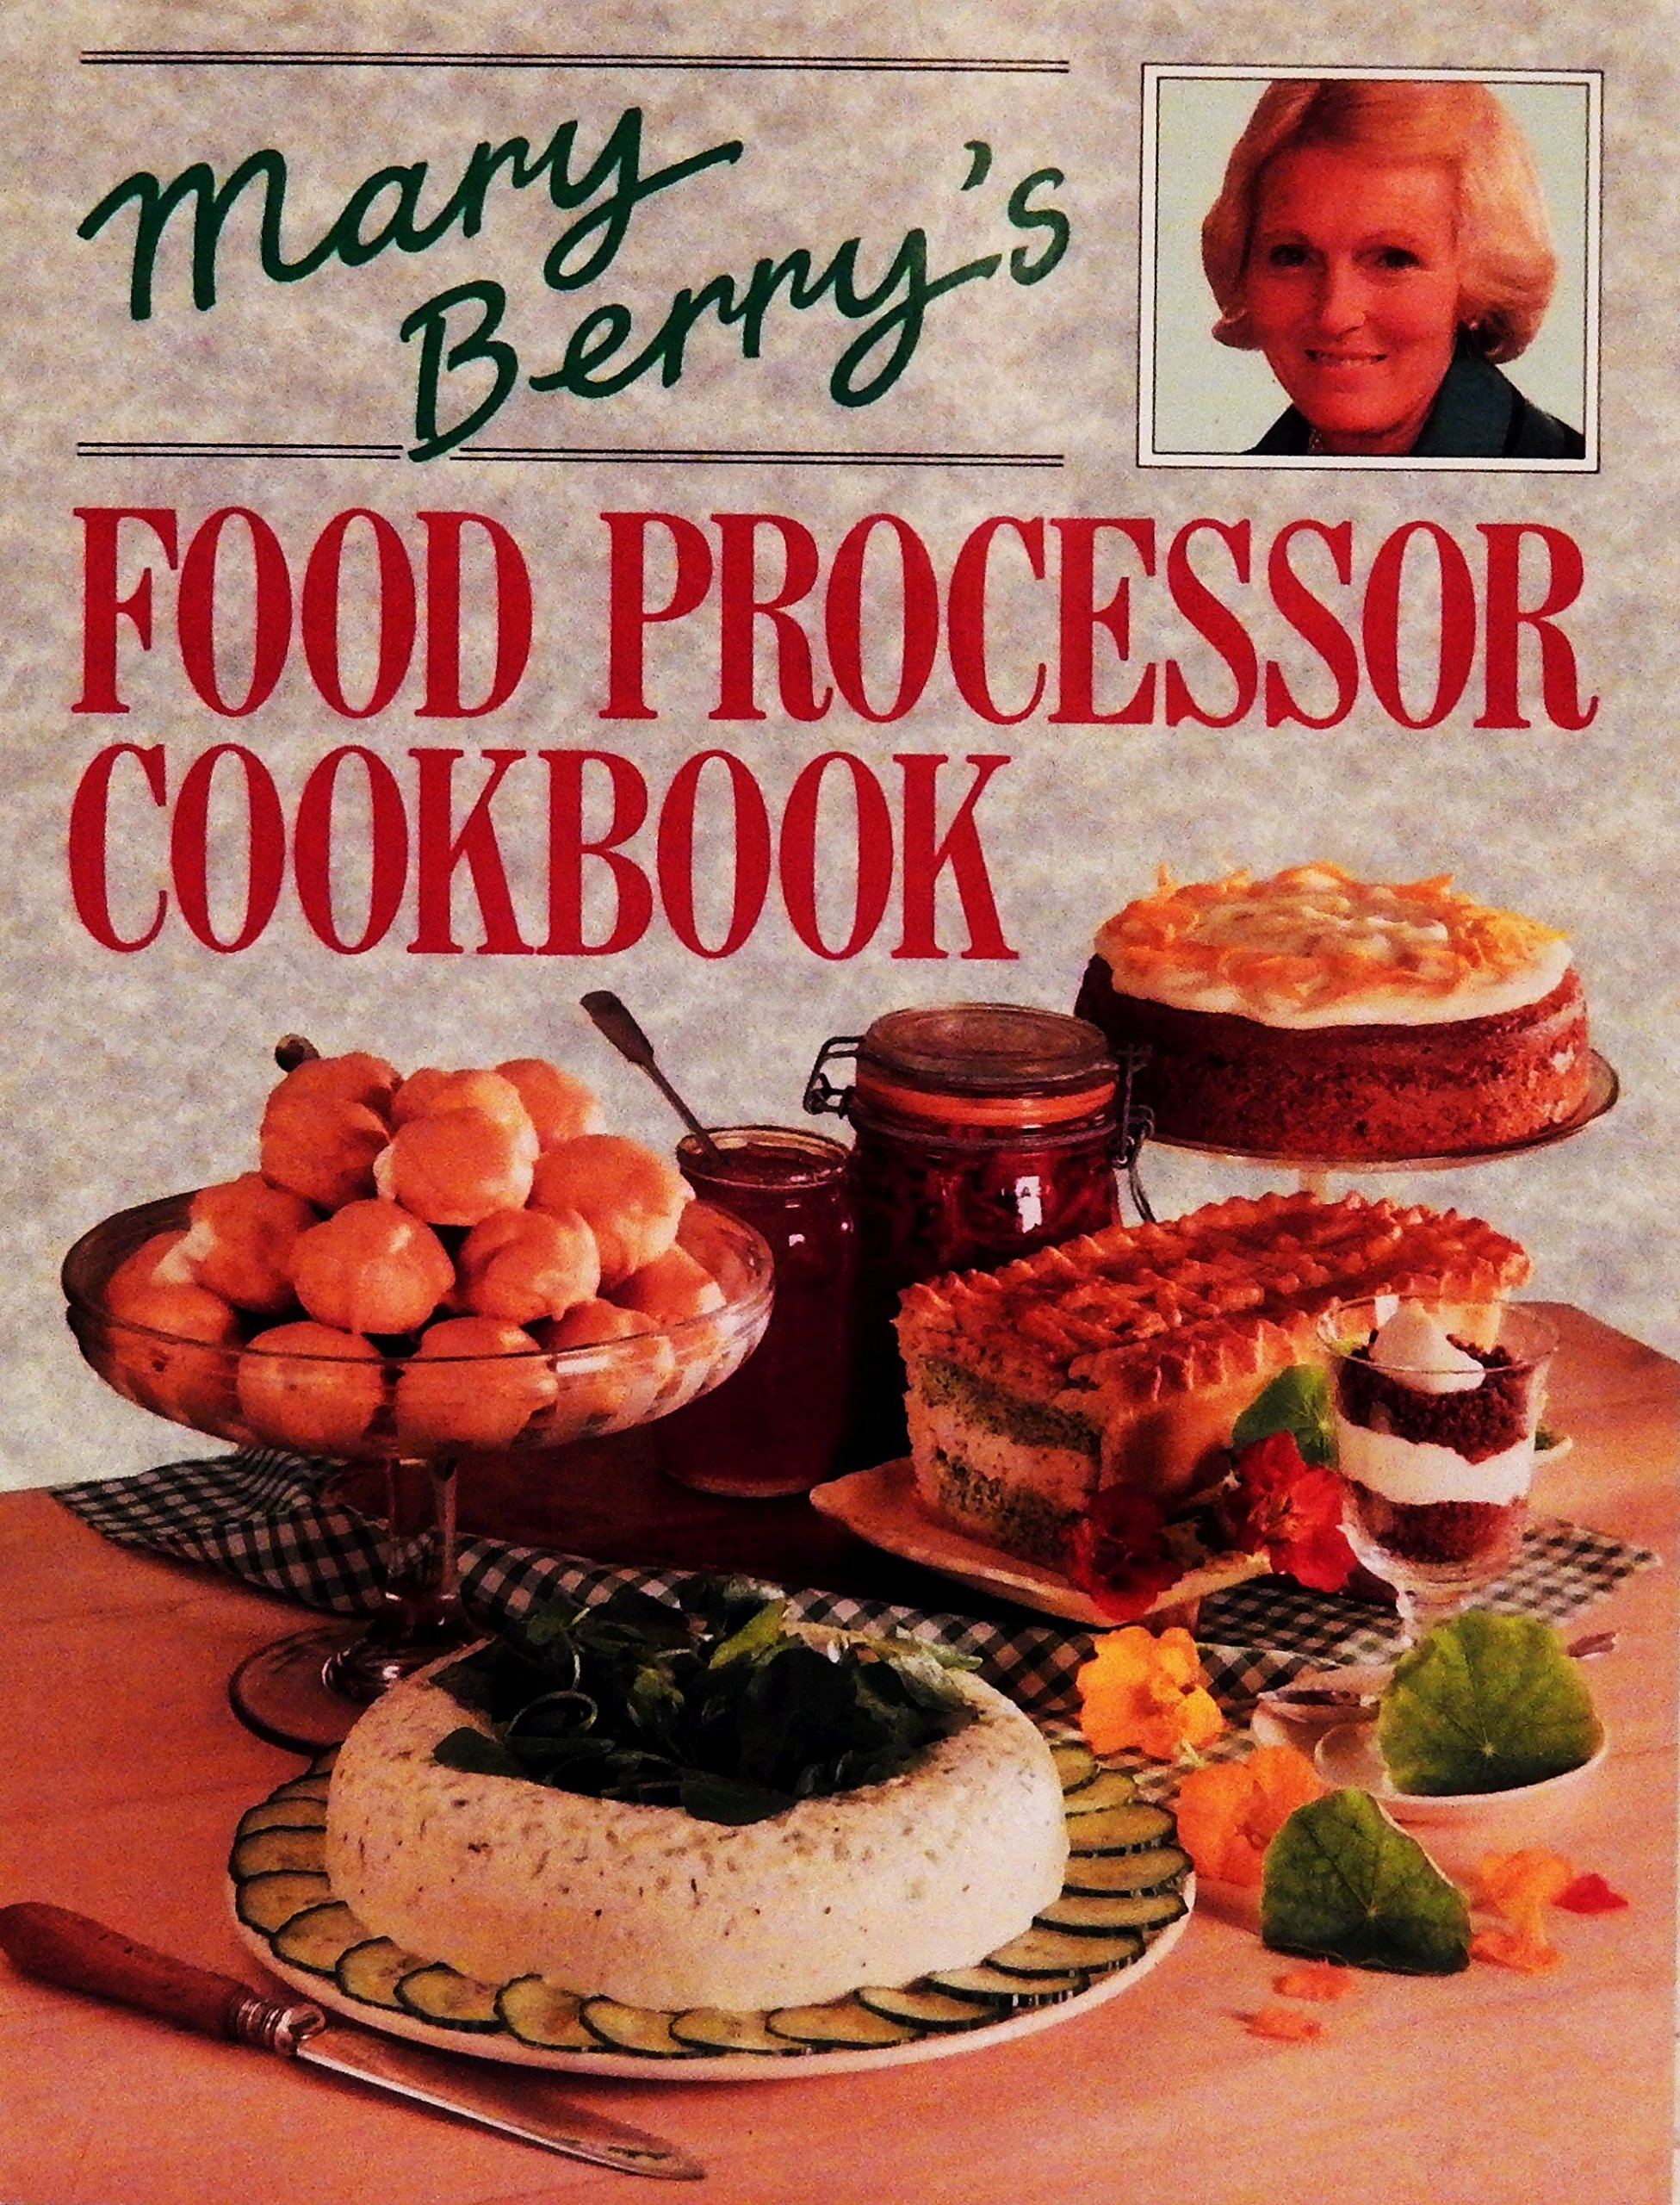 Mary berrys food processor cookbook amazon mary berry mary berrys food processor cookbook amazon mary berry 9780861889570 books forumfinder Choice Image